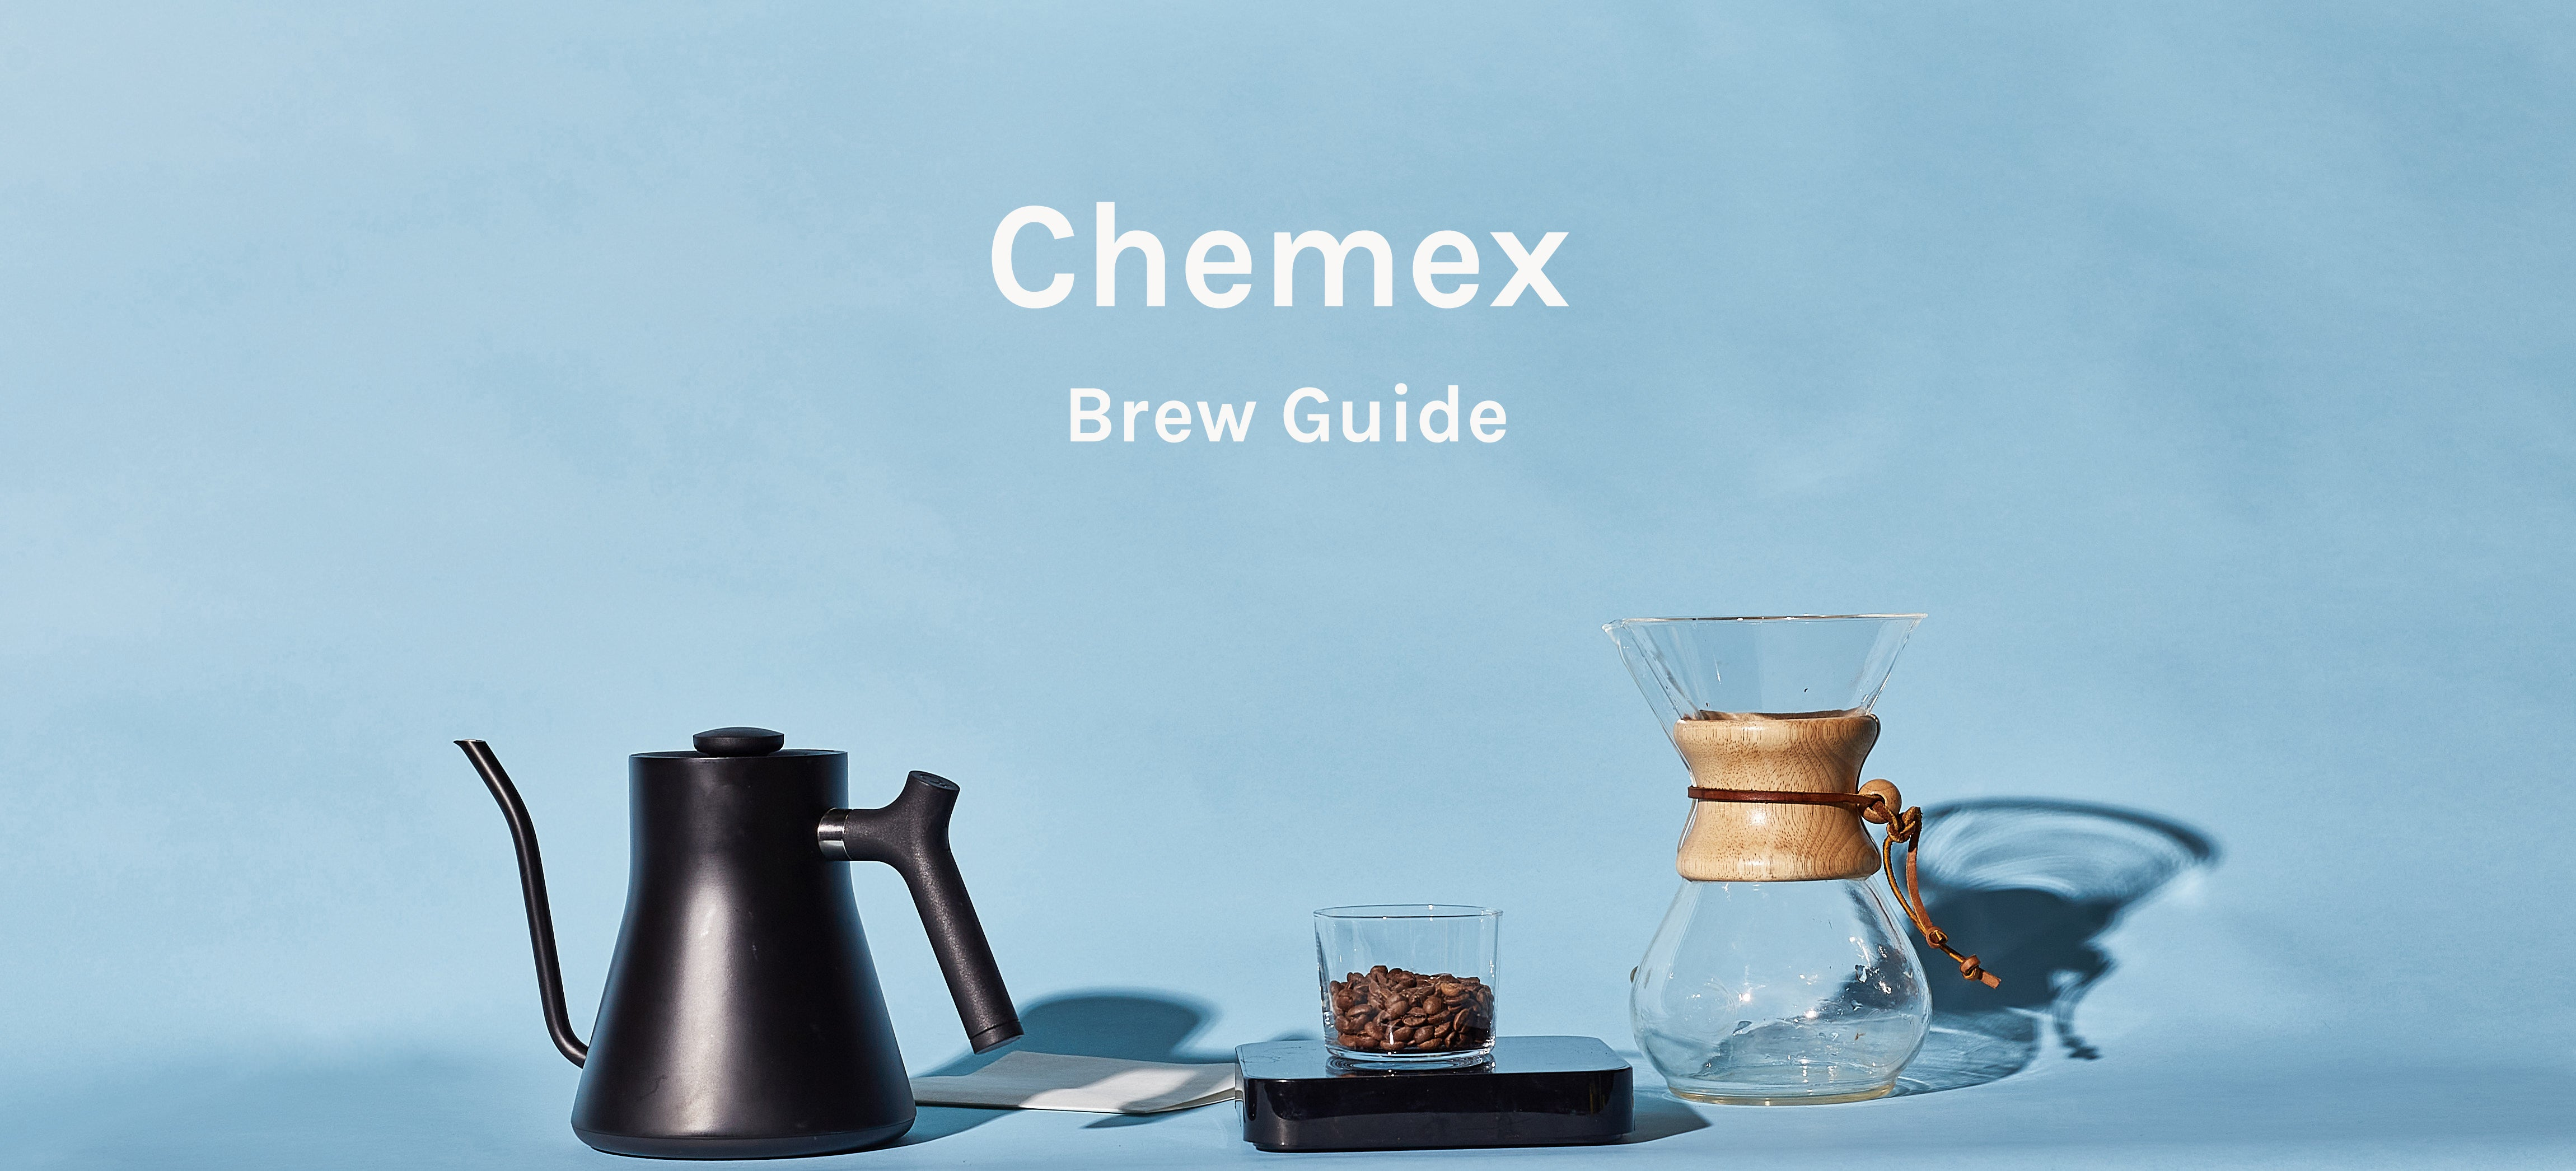 Chemex, Kettle, scale, and beans on blue background